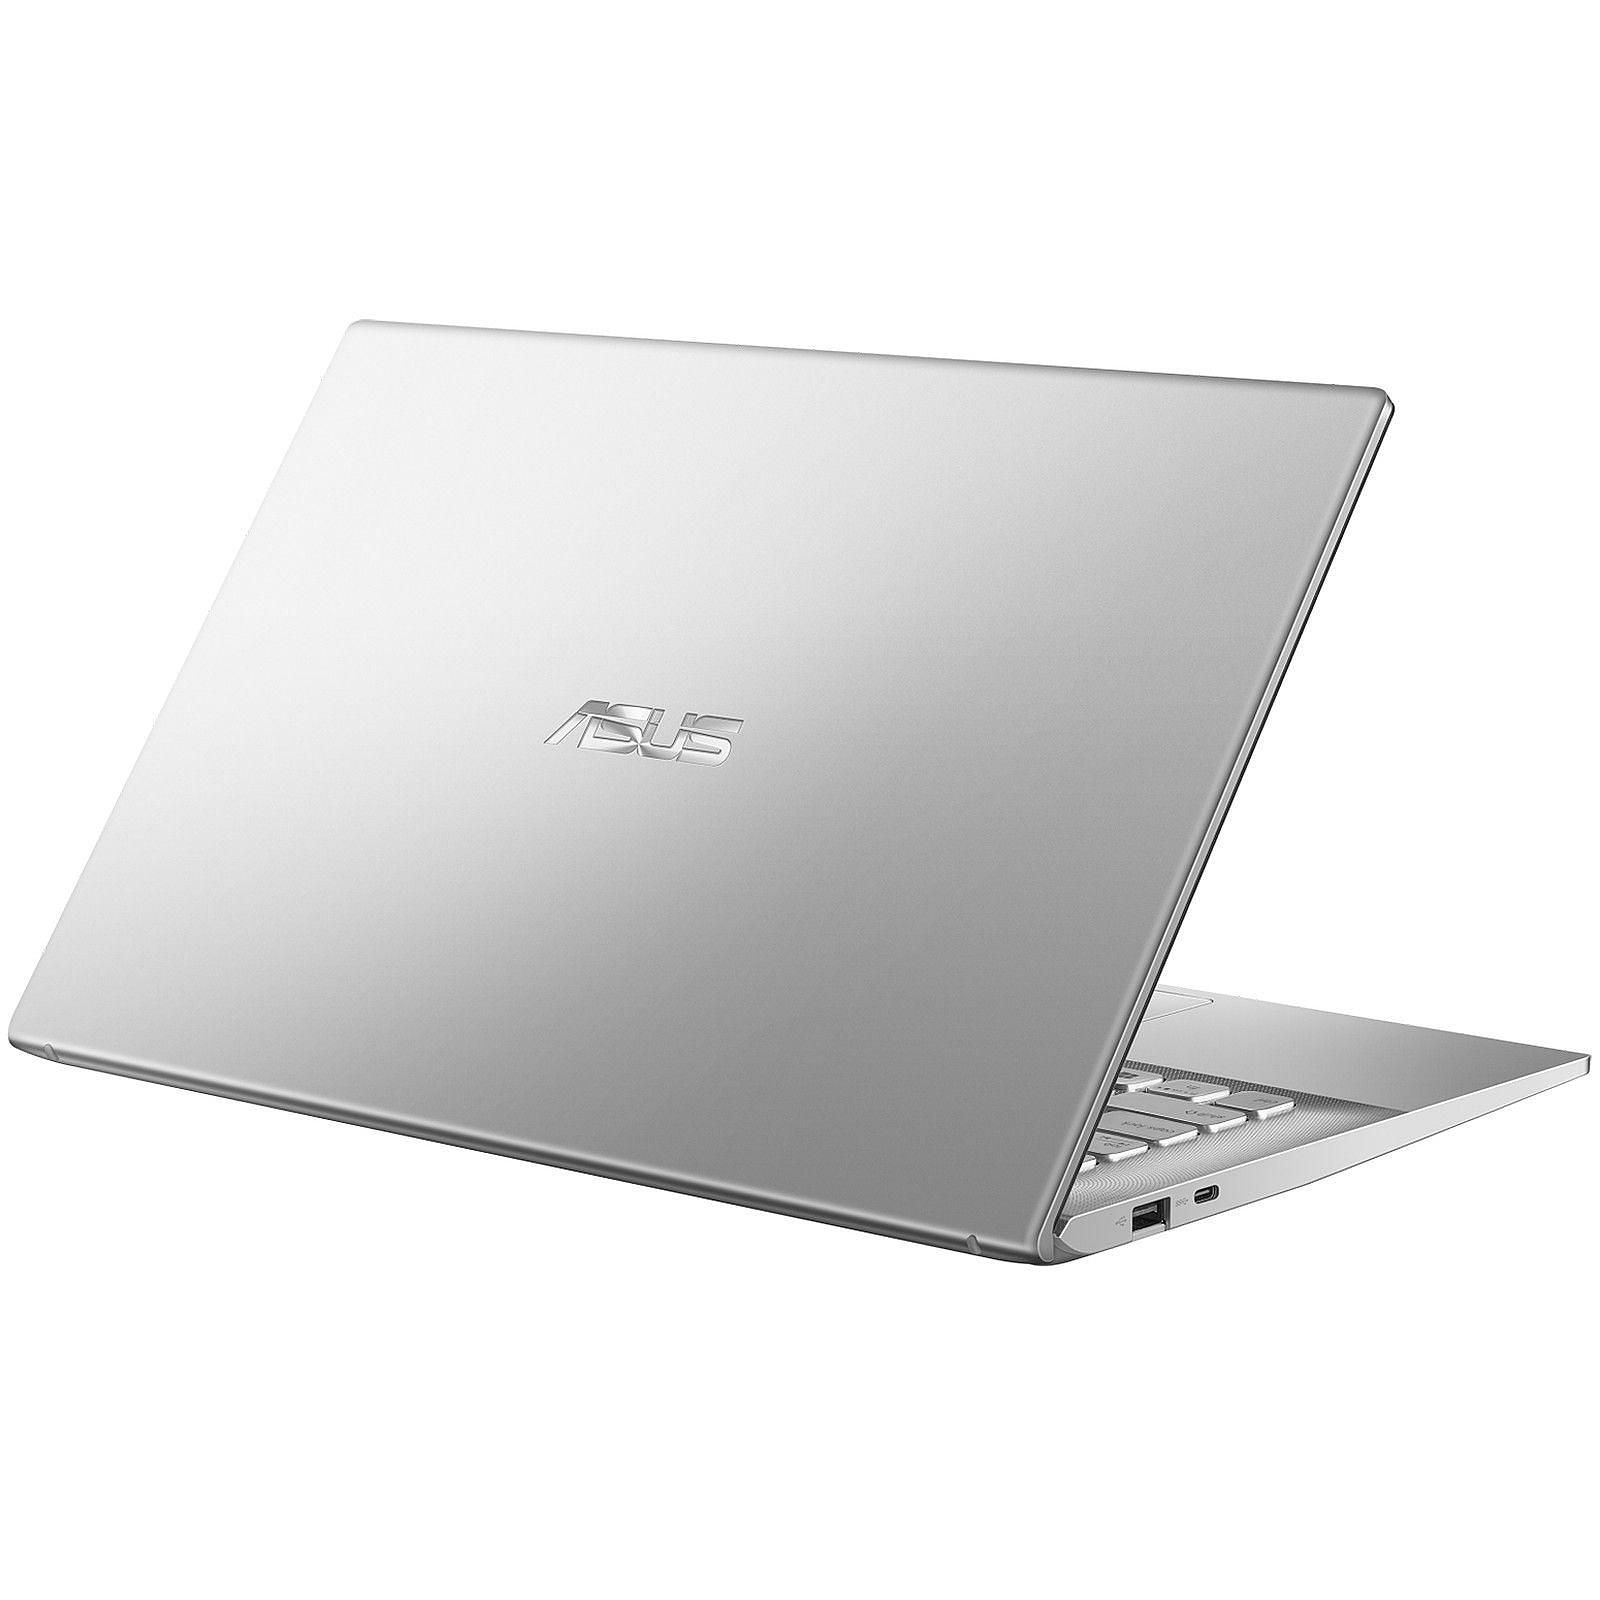 Asus 90NB0K01-M04920 - PC portable Asus - Cybertek.fr - 2